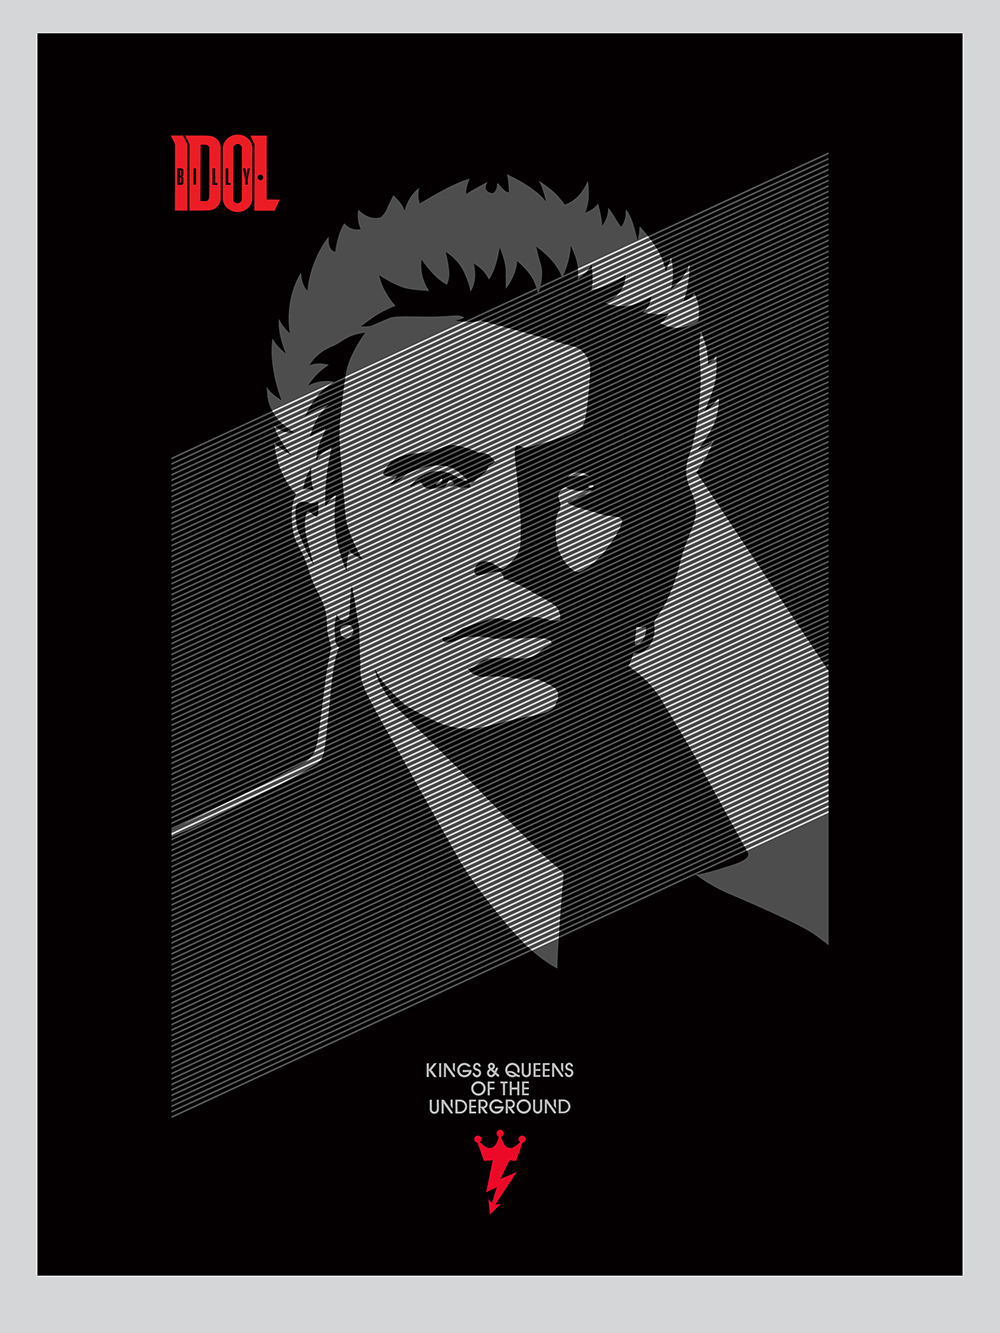 billy idol kings and queens of the underground obey giant